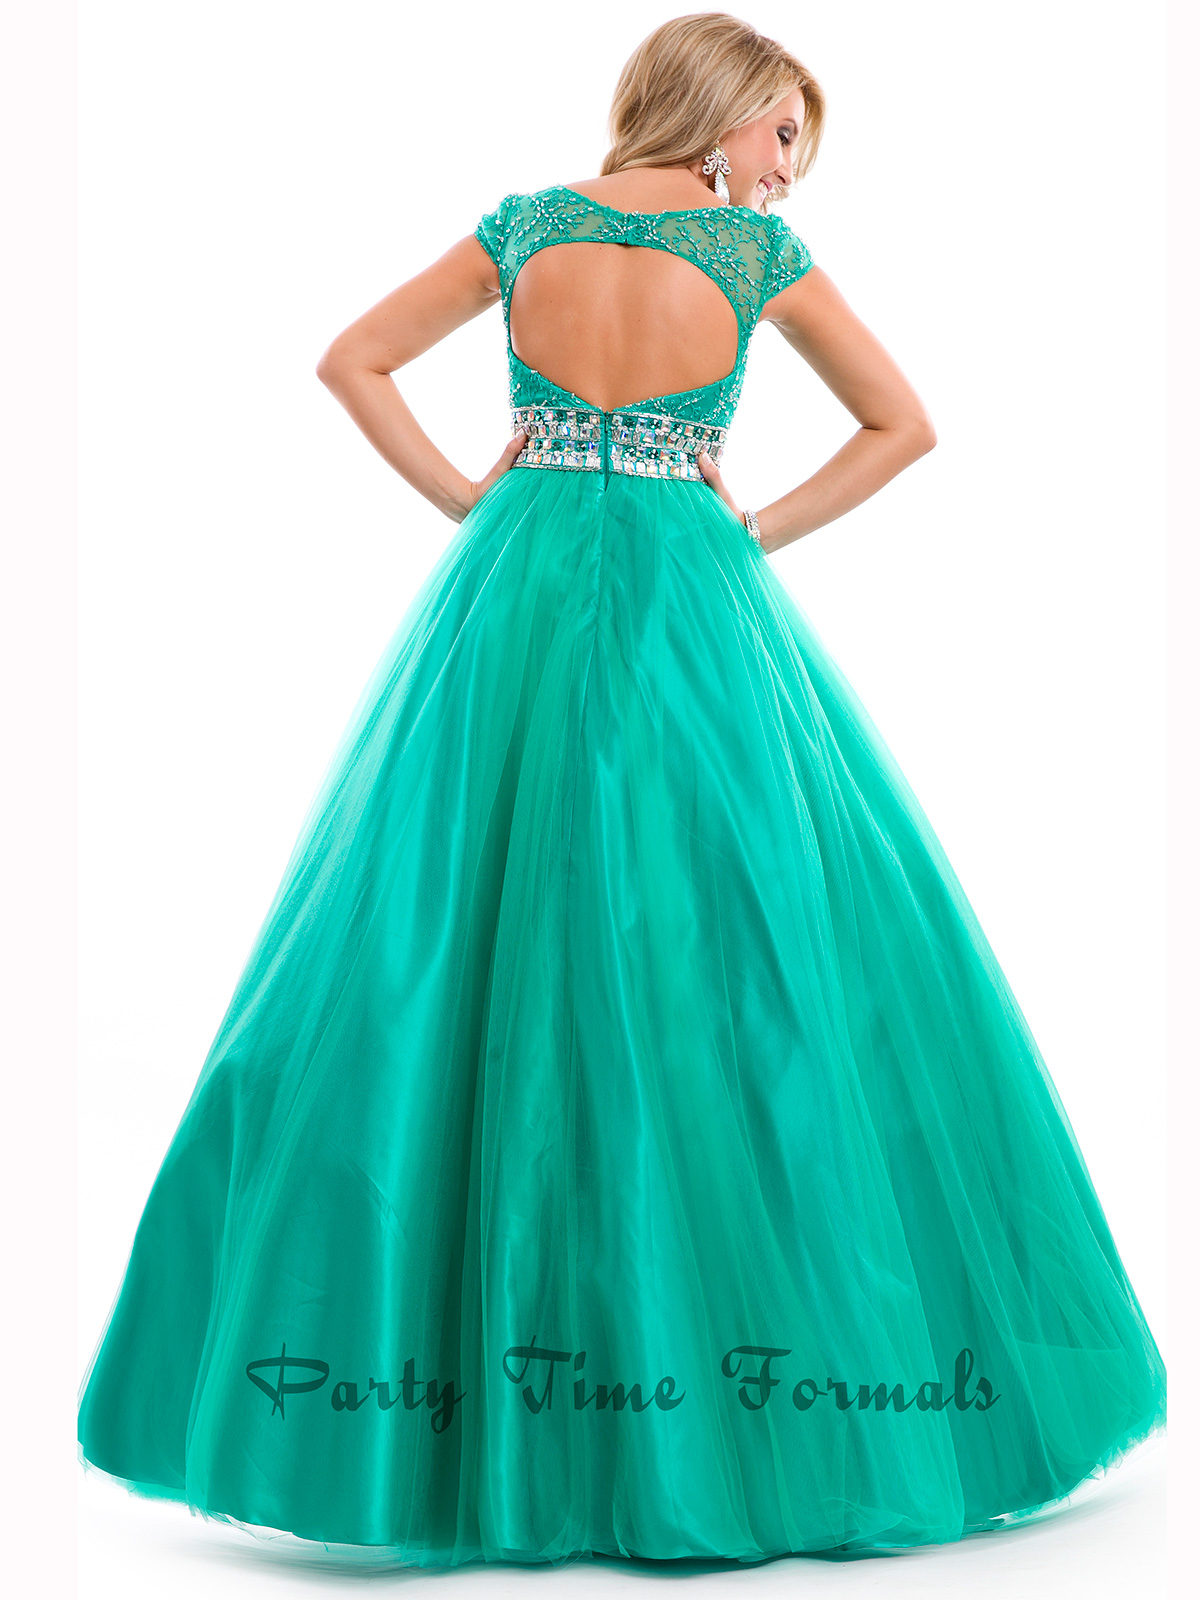 Party Time Formal Dresses - Boutique Prom Dresses